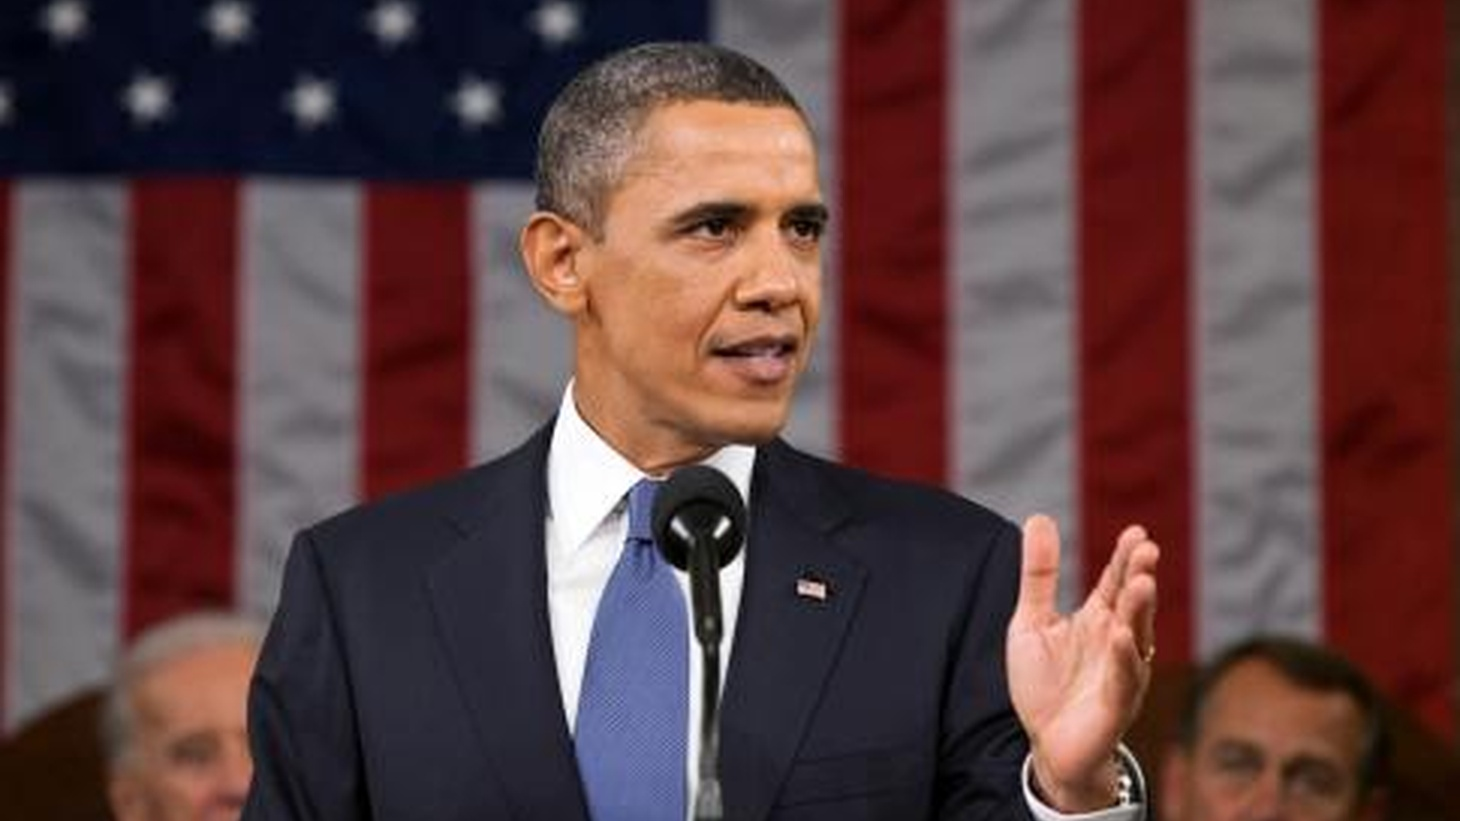 KCRW presents live anchored coverage of President Obama's address to a joint session of Congress, Thursday, September 8 at 4pm, on the economy and his jobs creation plan....